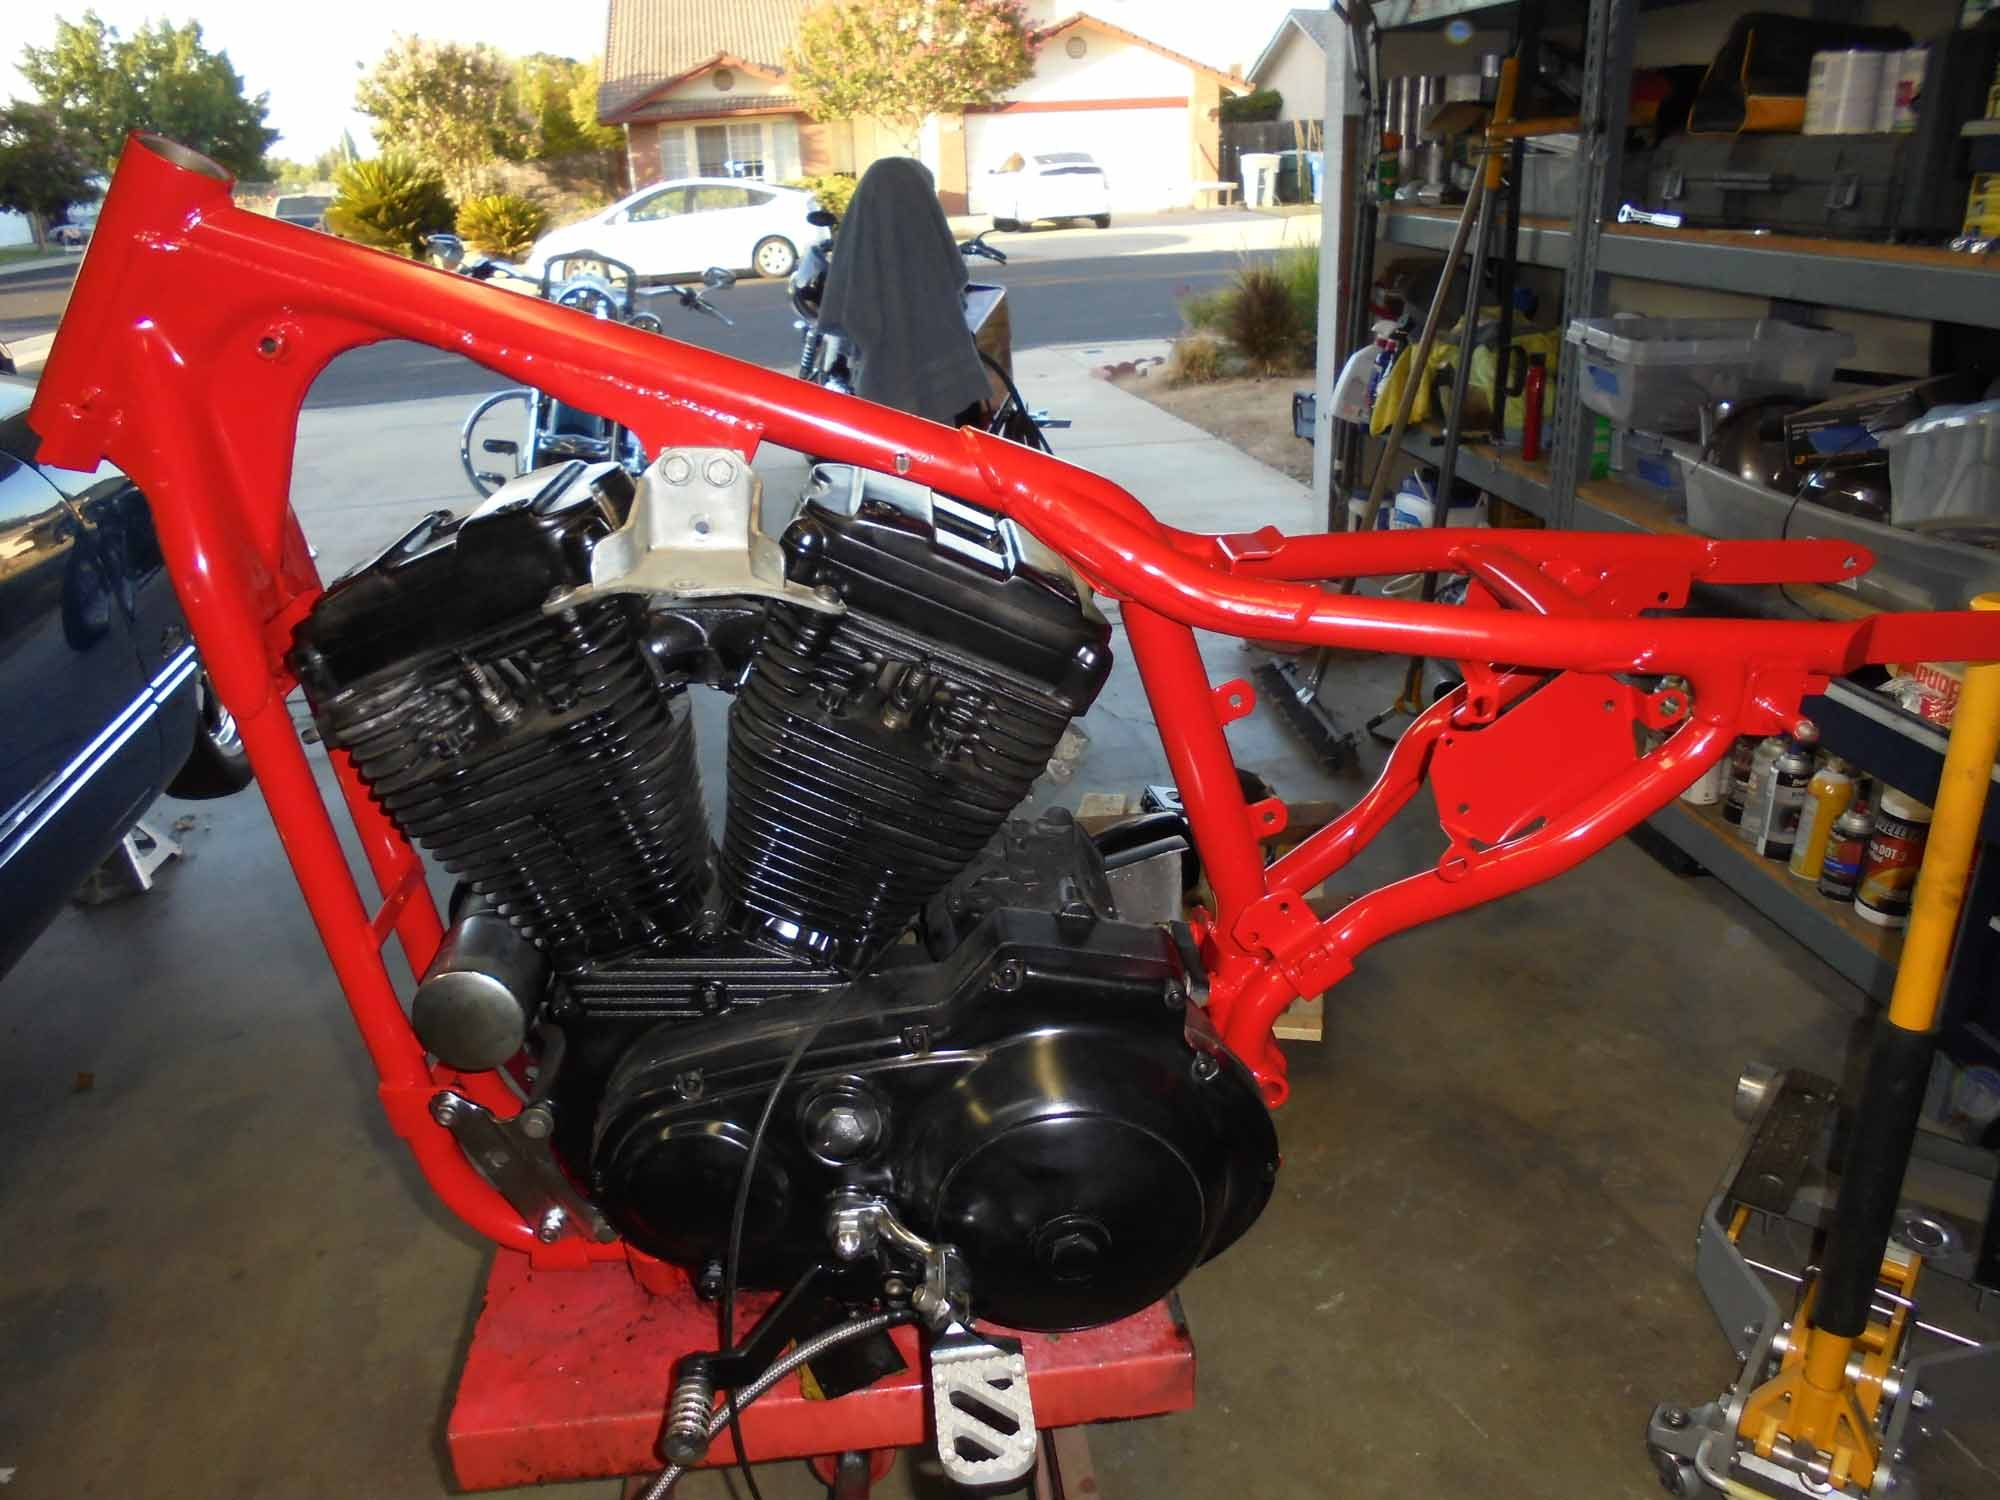 New Project 87 883 Page 3 Harley Davidson Forums